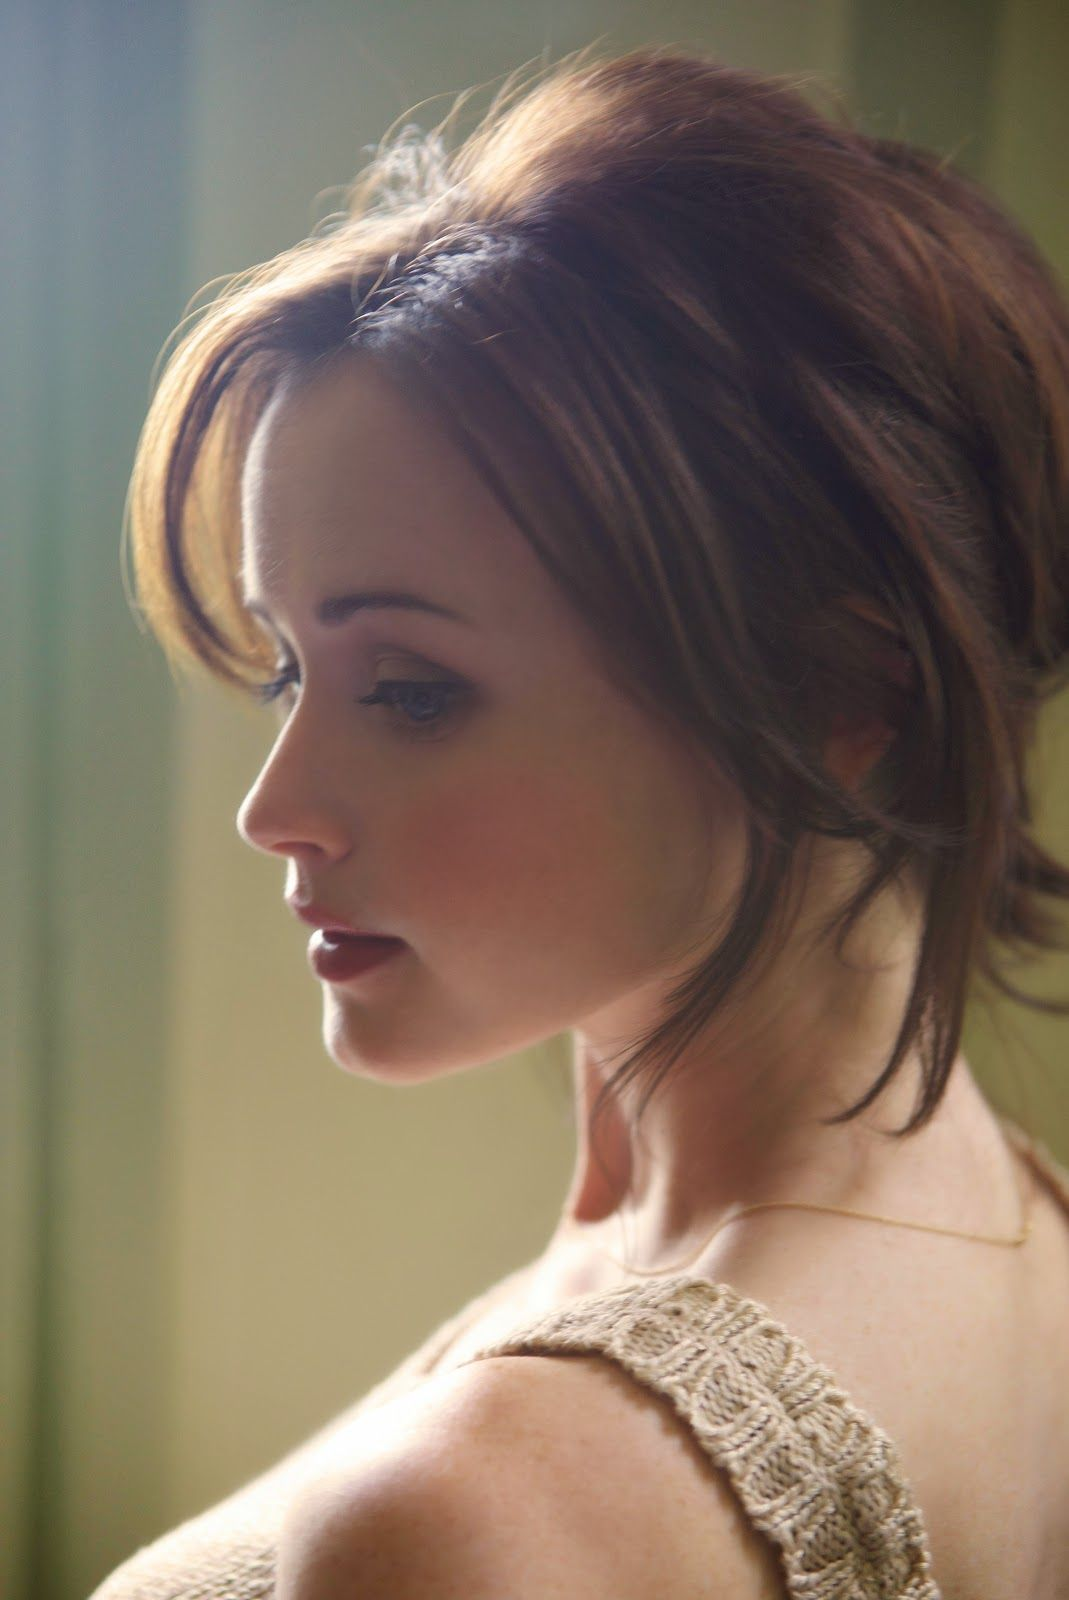 Pin On Actress Hd Wallpapers Alexis bledel hd wallpapers hd images